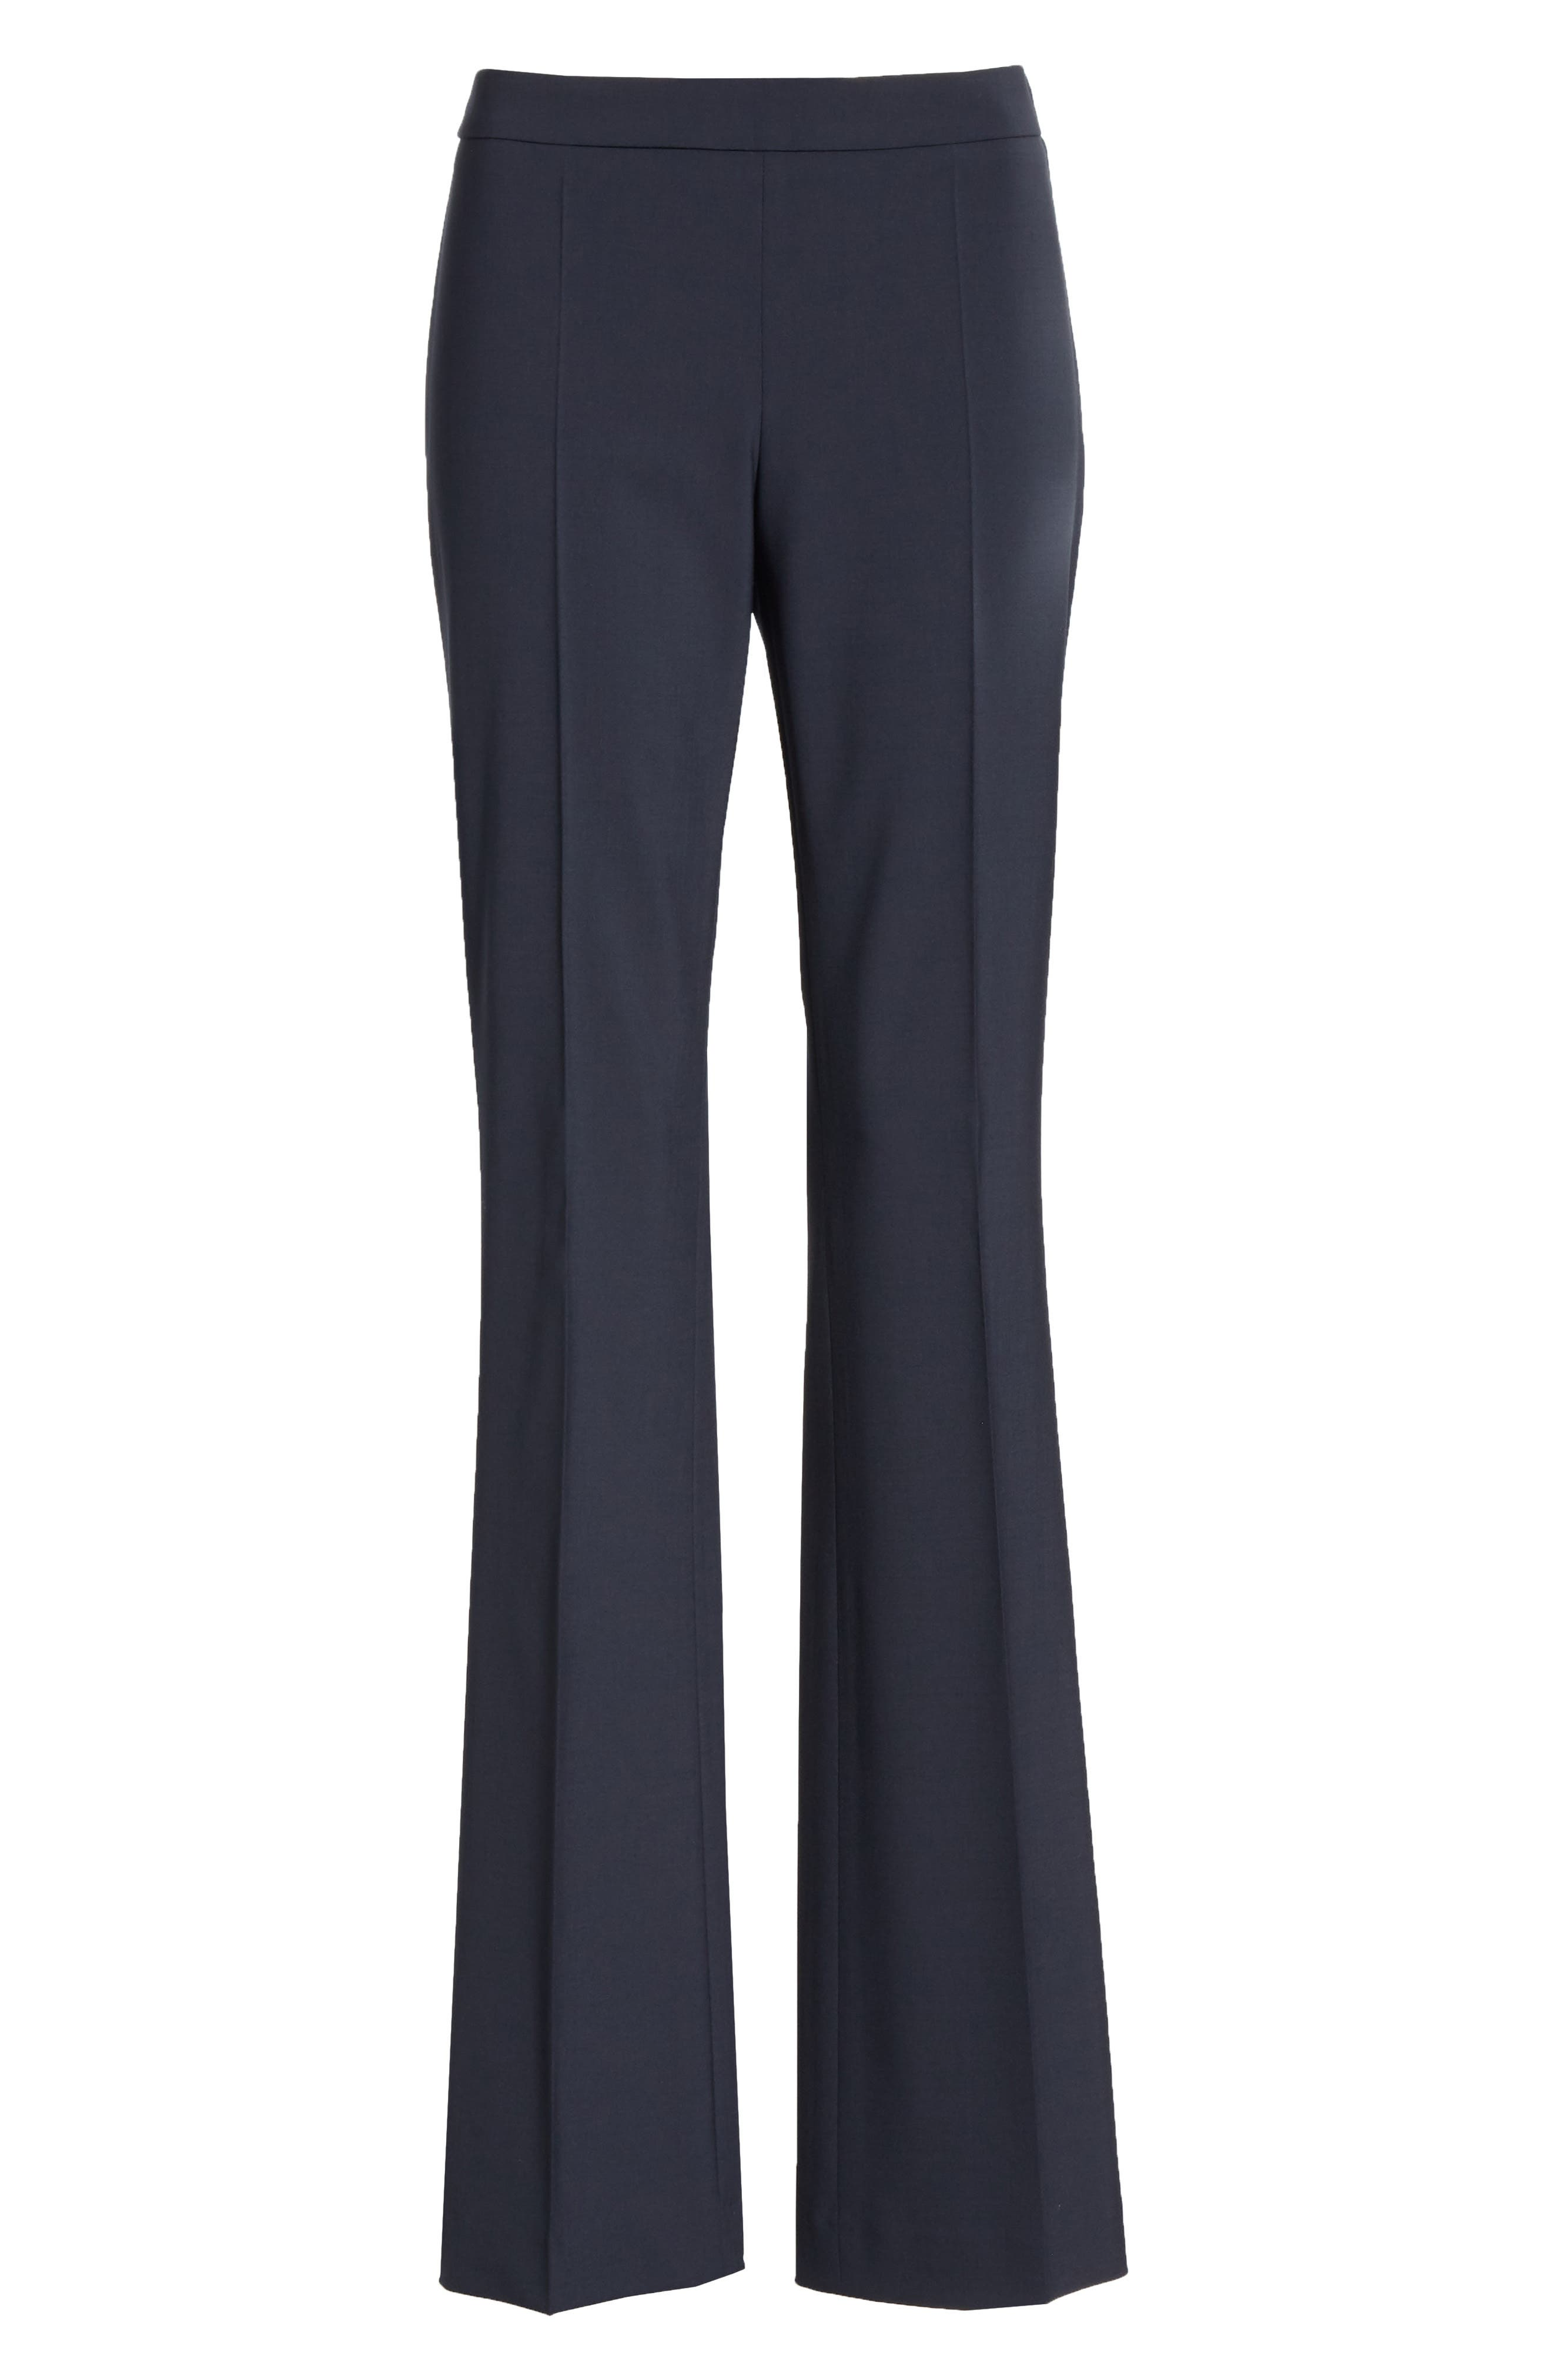 BOSS, Tulea Side Zip Tropical Stretch Wool Trousers, Alternate thumbnail 7, color, NAVY